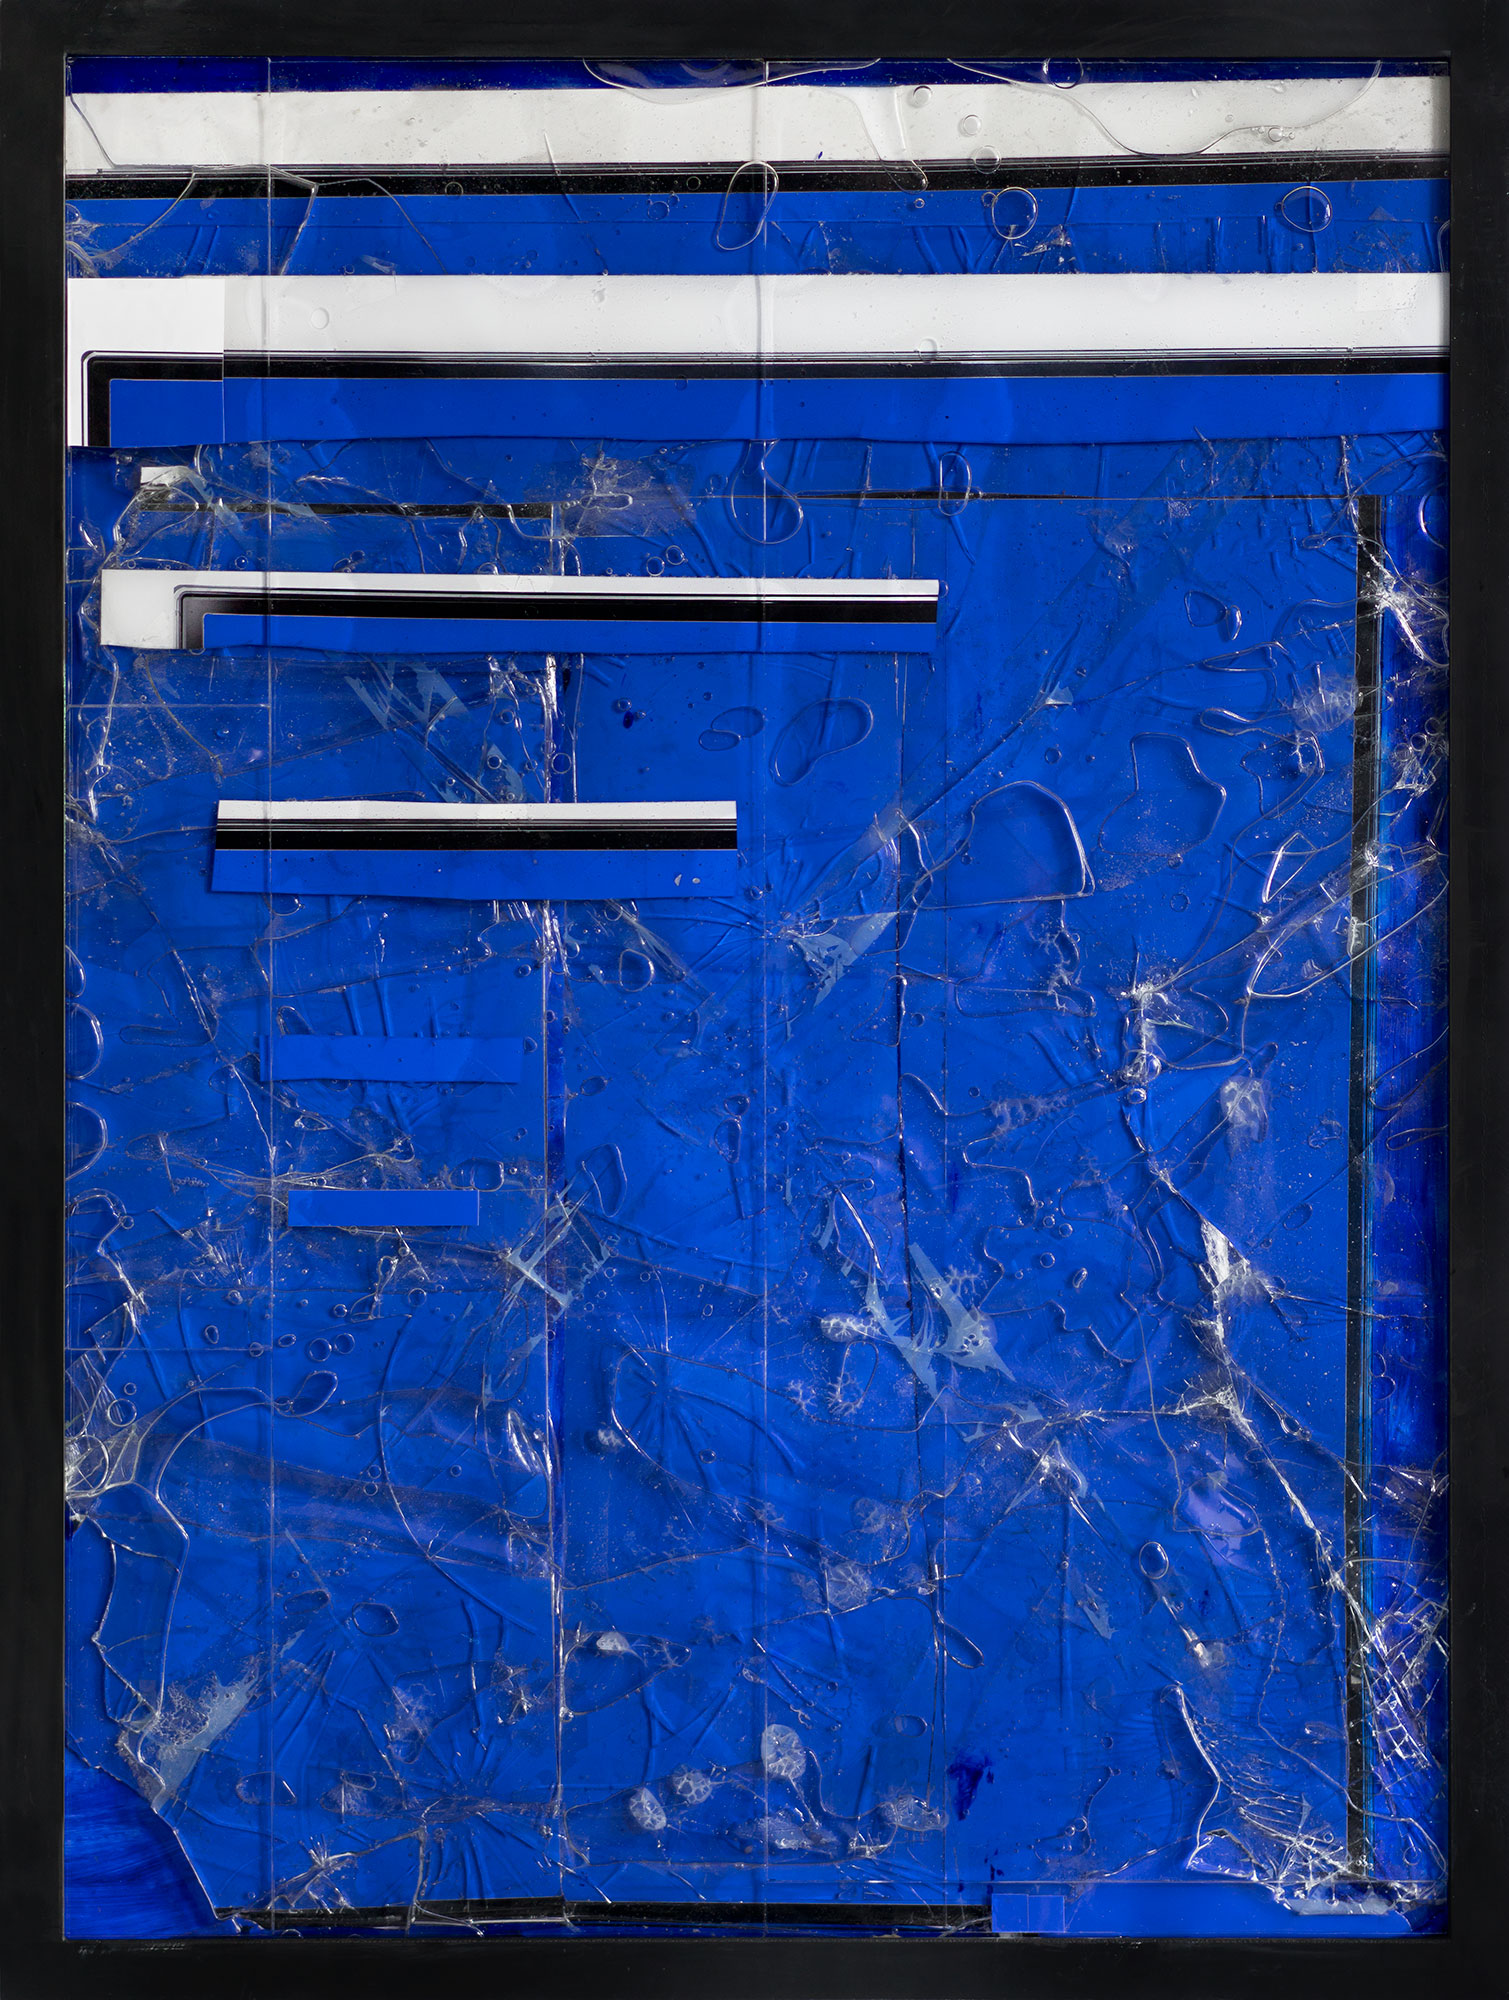 Steel/Glass 31 (Blue Screen) - 36 x 48 inches, 2015